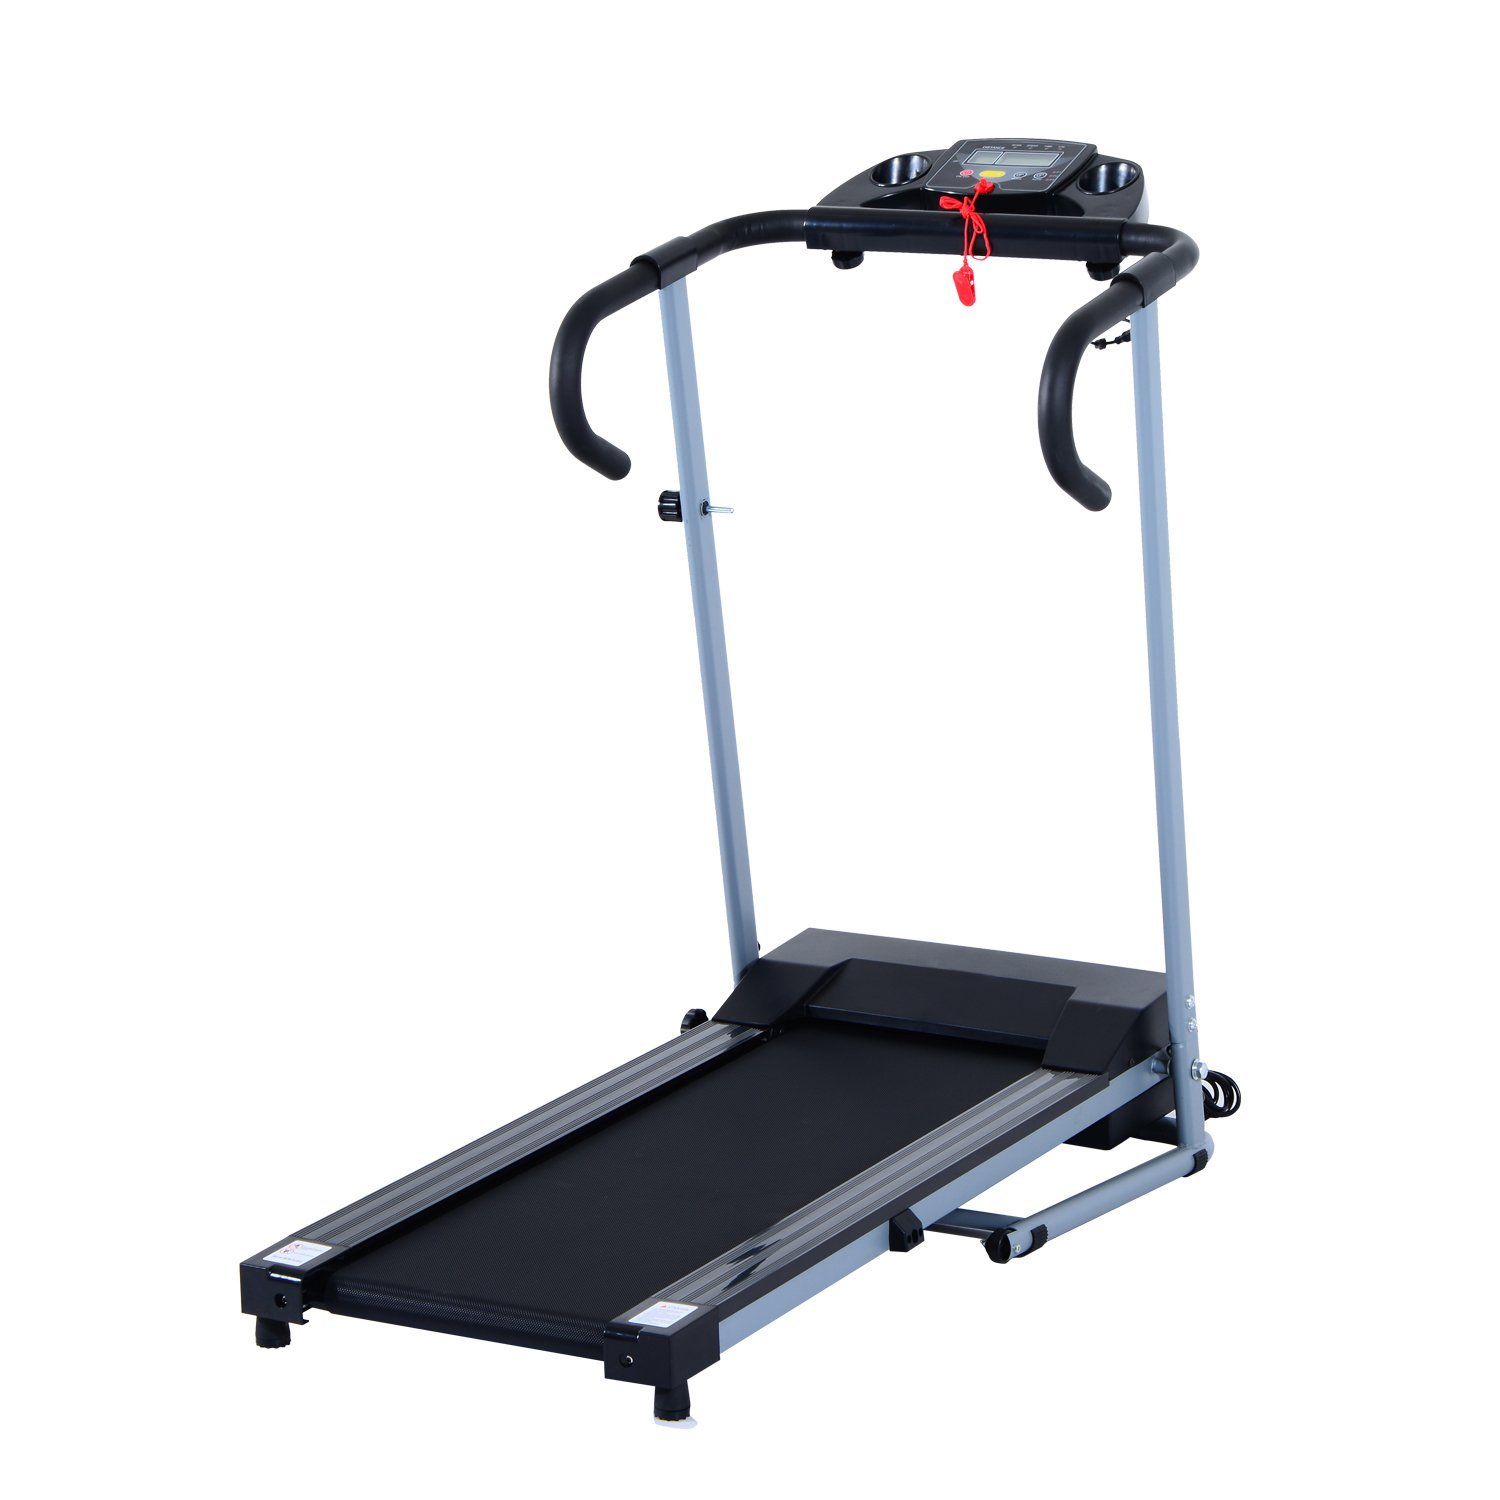 Soozier 500W Portable Electric Folding Treadmill